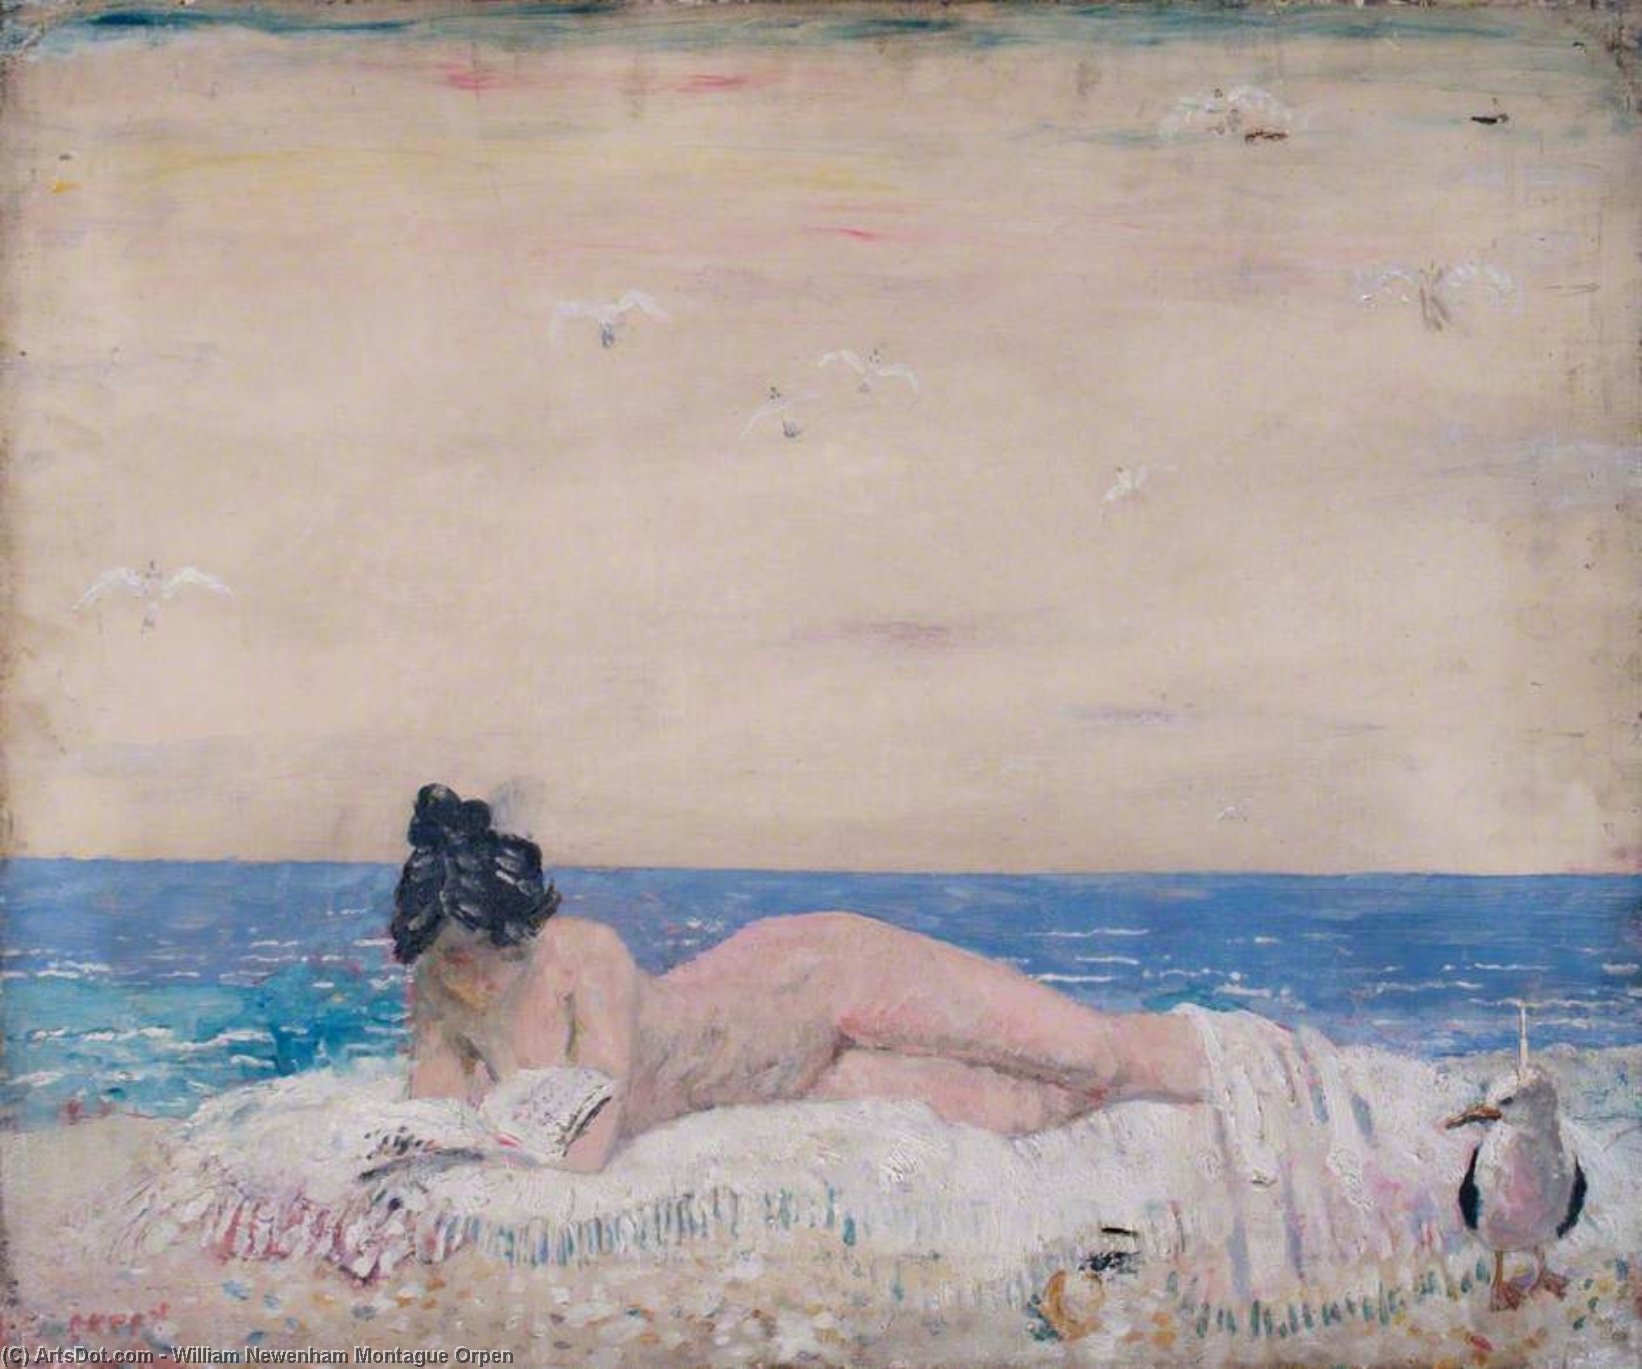 nu féminin maquette  lisant  sur  au  littoral  de William Newenham Montague Orpen (1878-1931, Ireland)